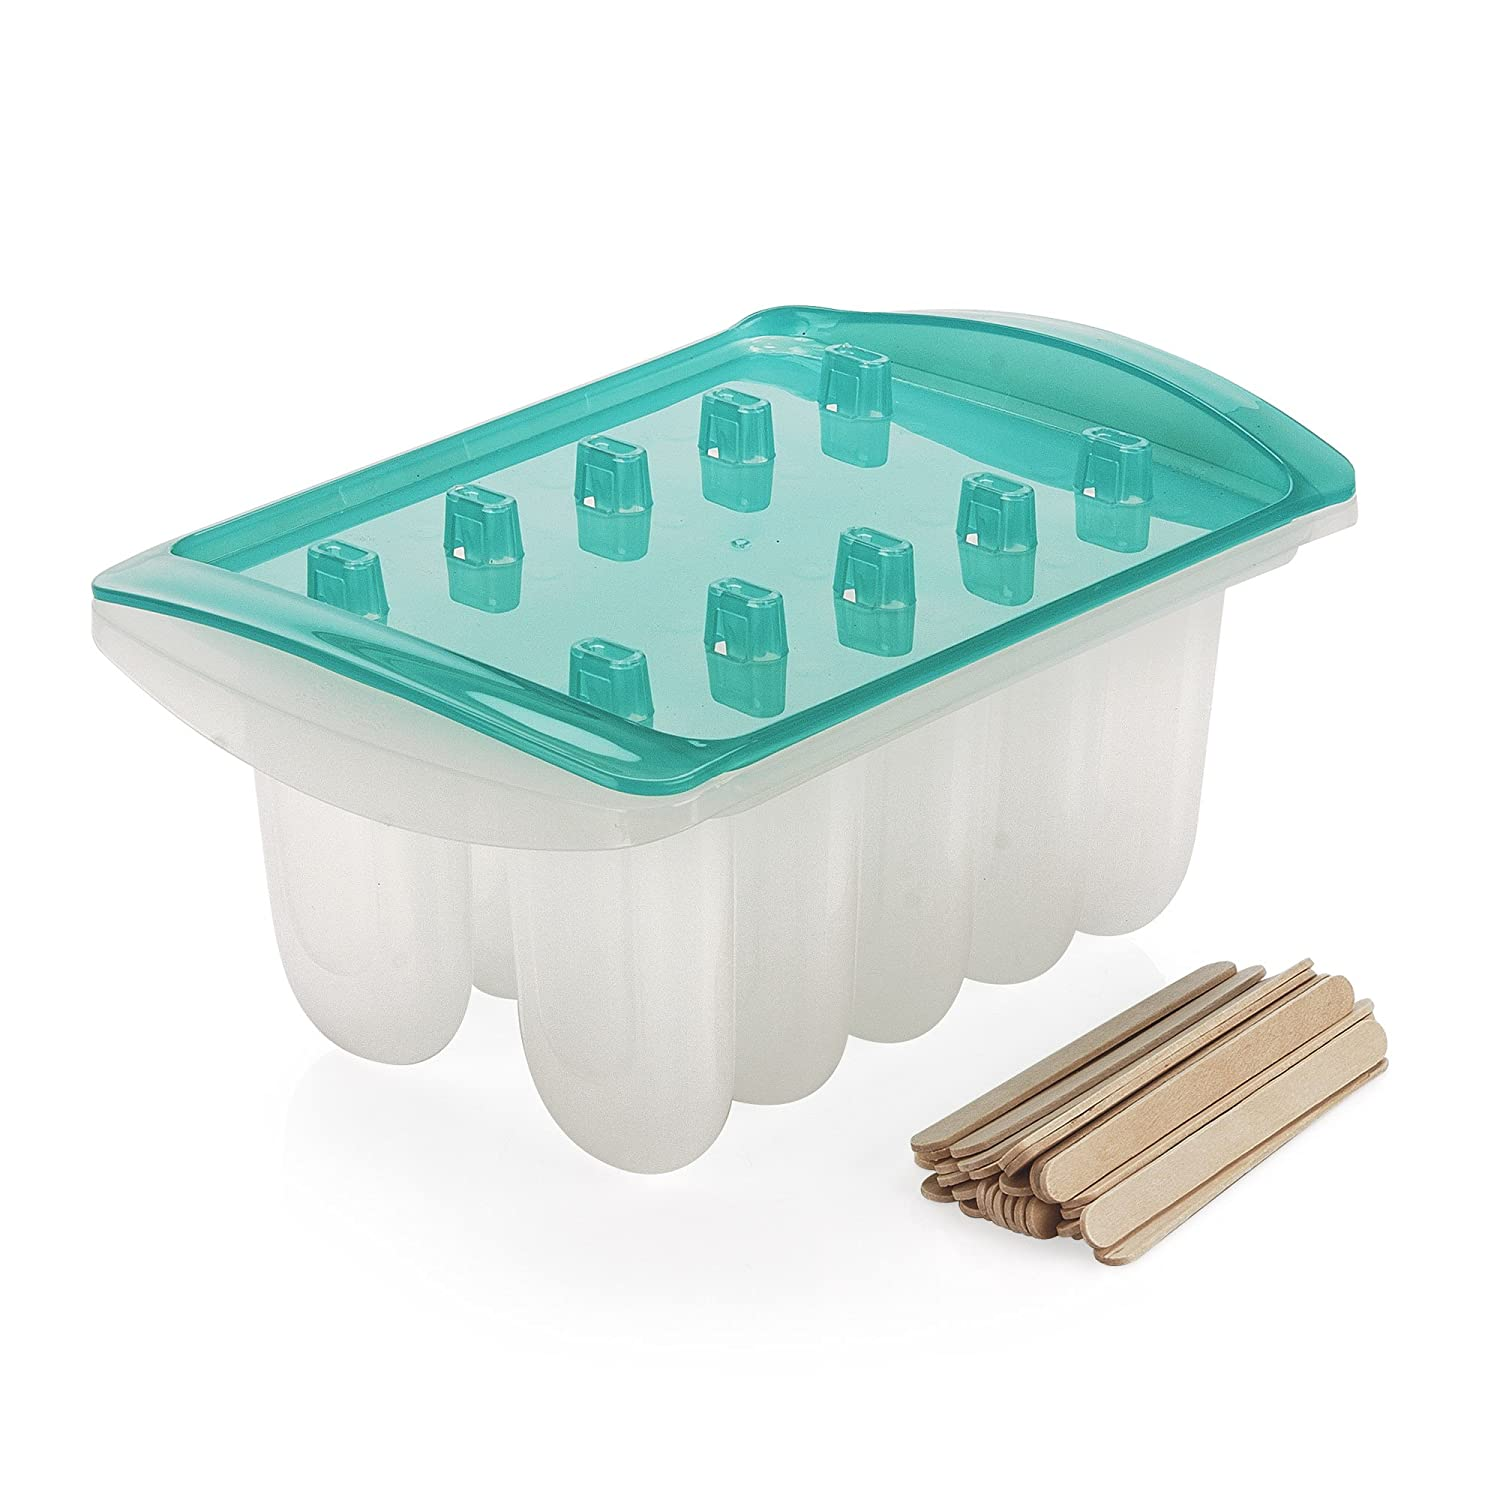 Sweet Creations Popsicle Maker Set with Wooden Sticks, Blue 05004